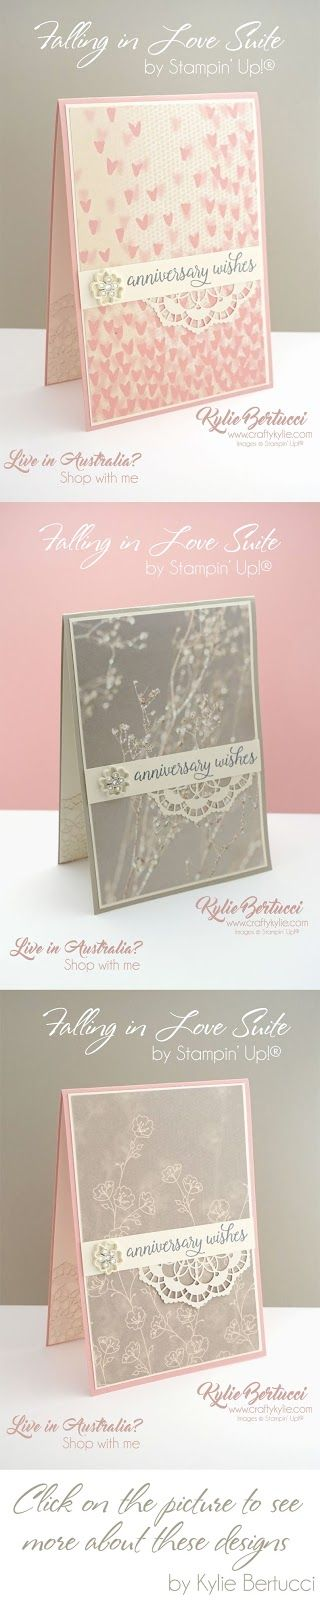 Kylie's Facebook Live video 21st February. Click on the image to see the recording of the live video and watch Kylie make these gorgeous cards using the Falling in Love Designer Series Paper.